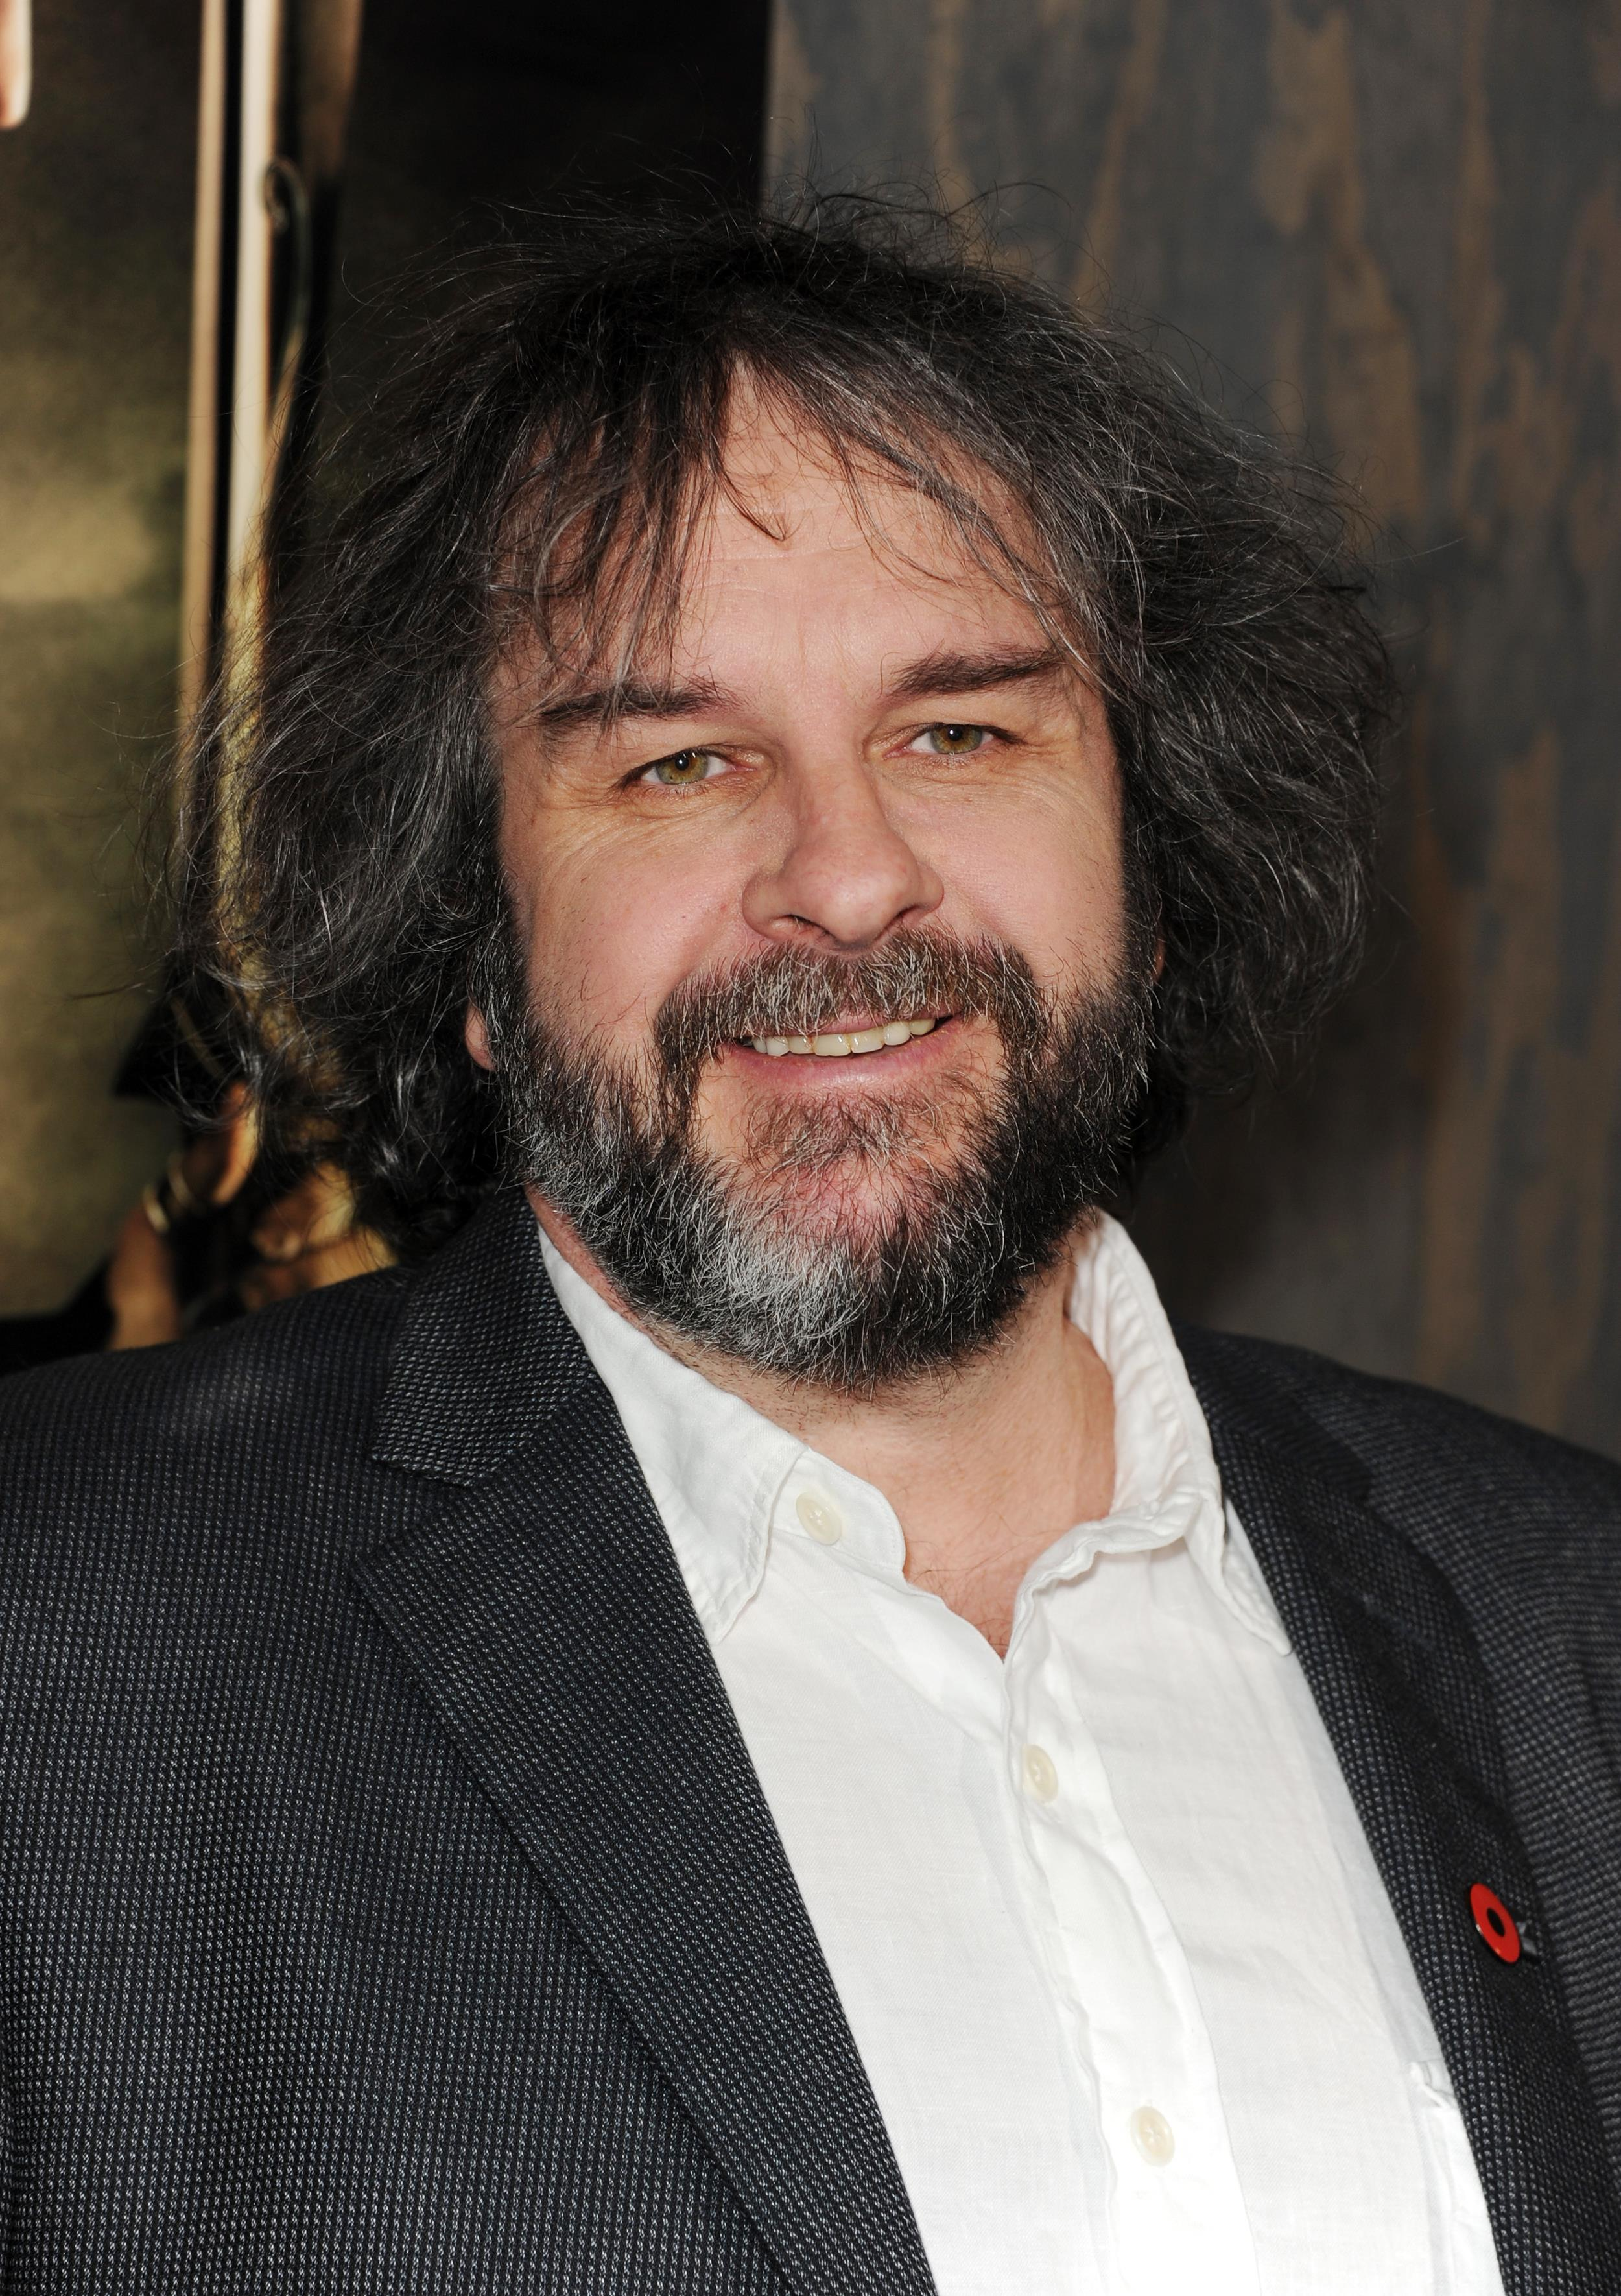 peter jackson a caadeaed